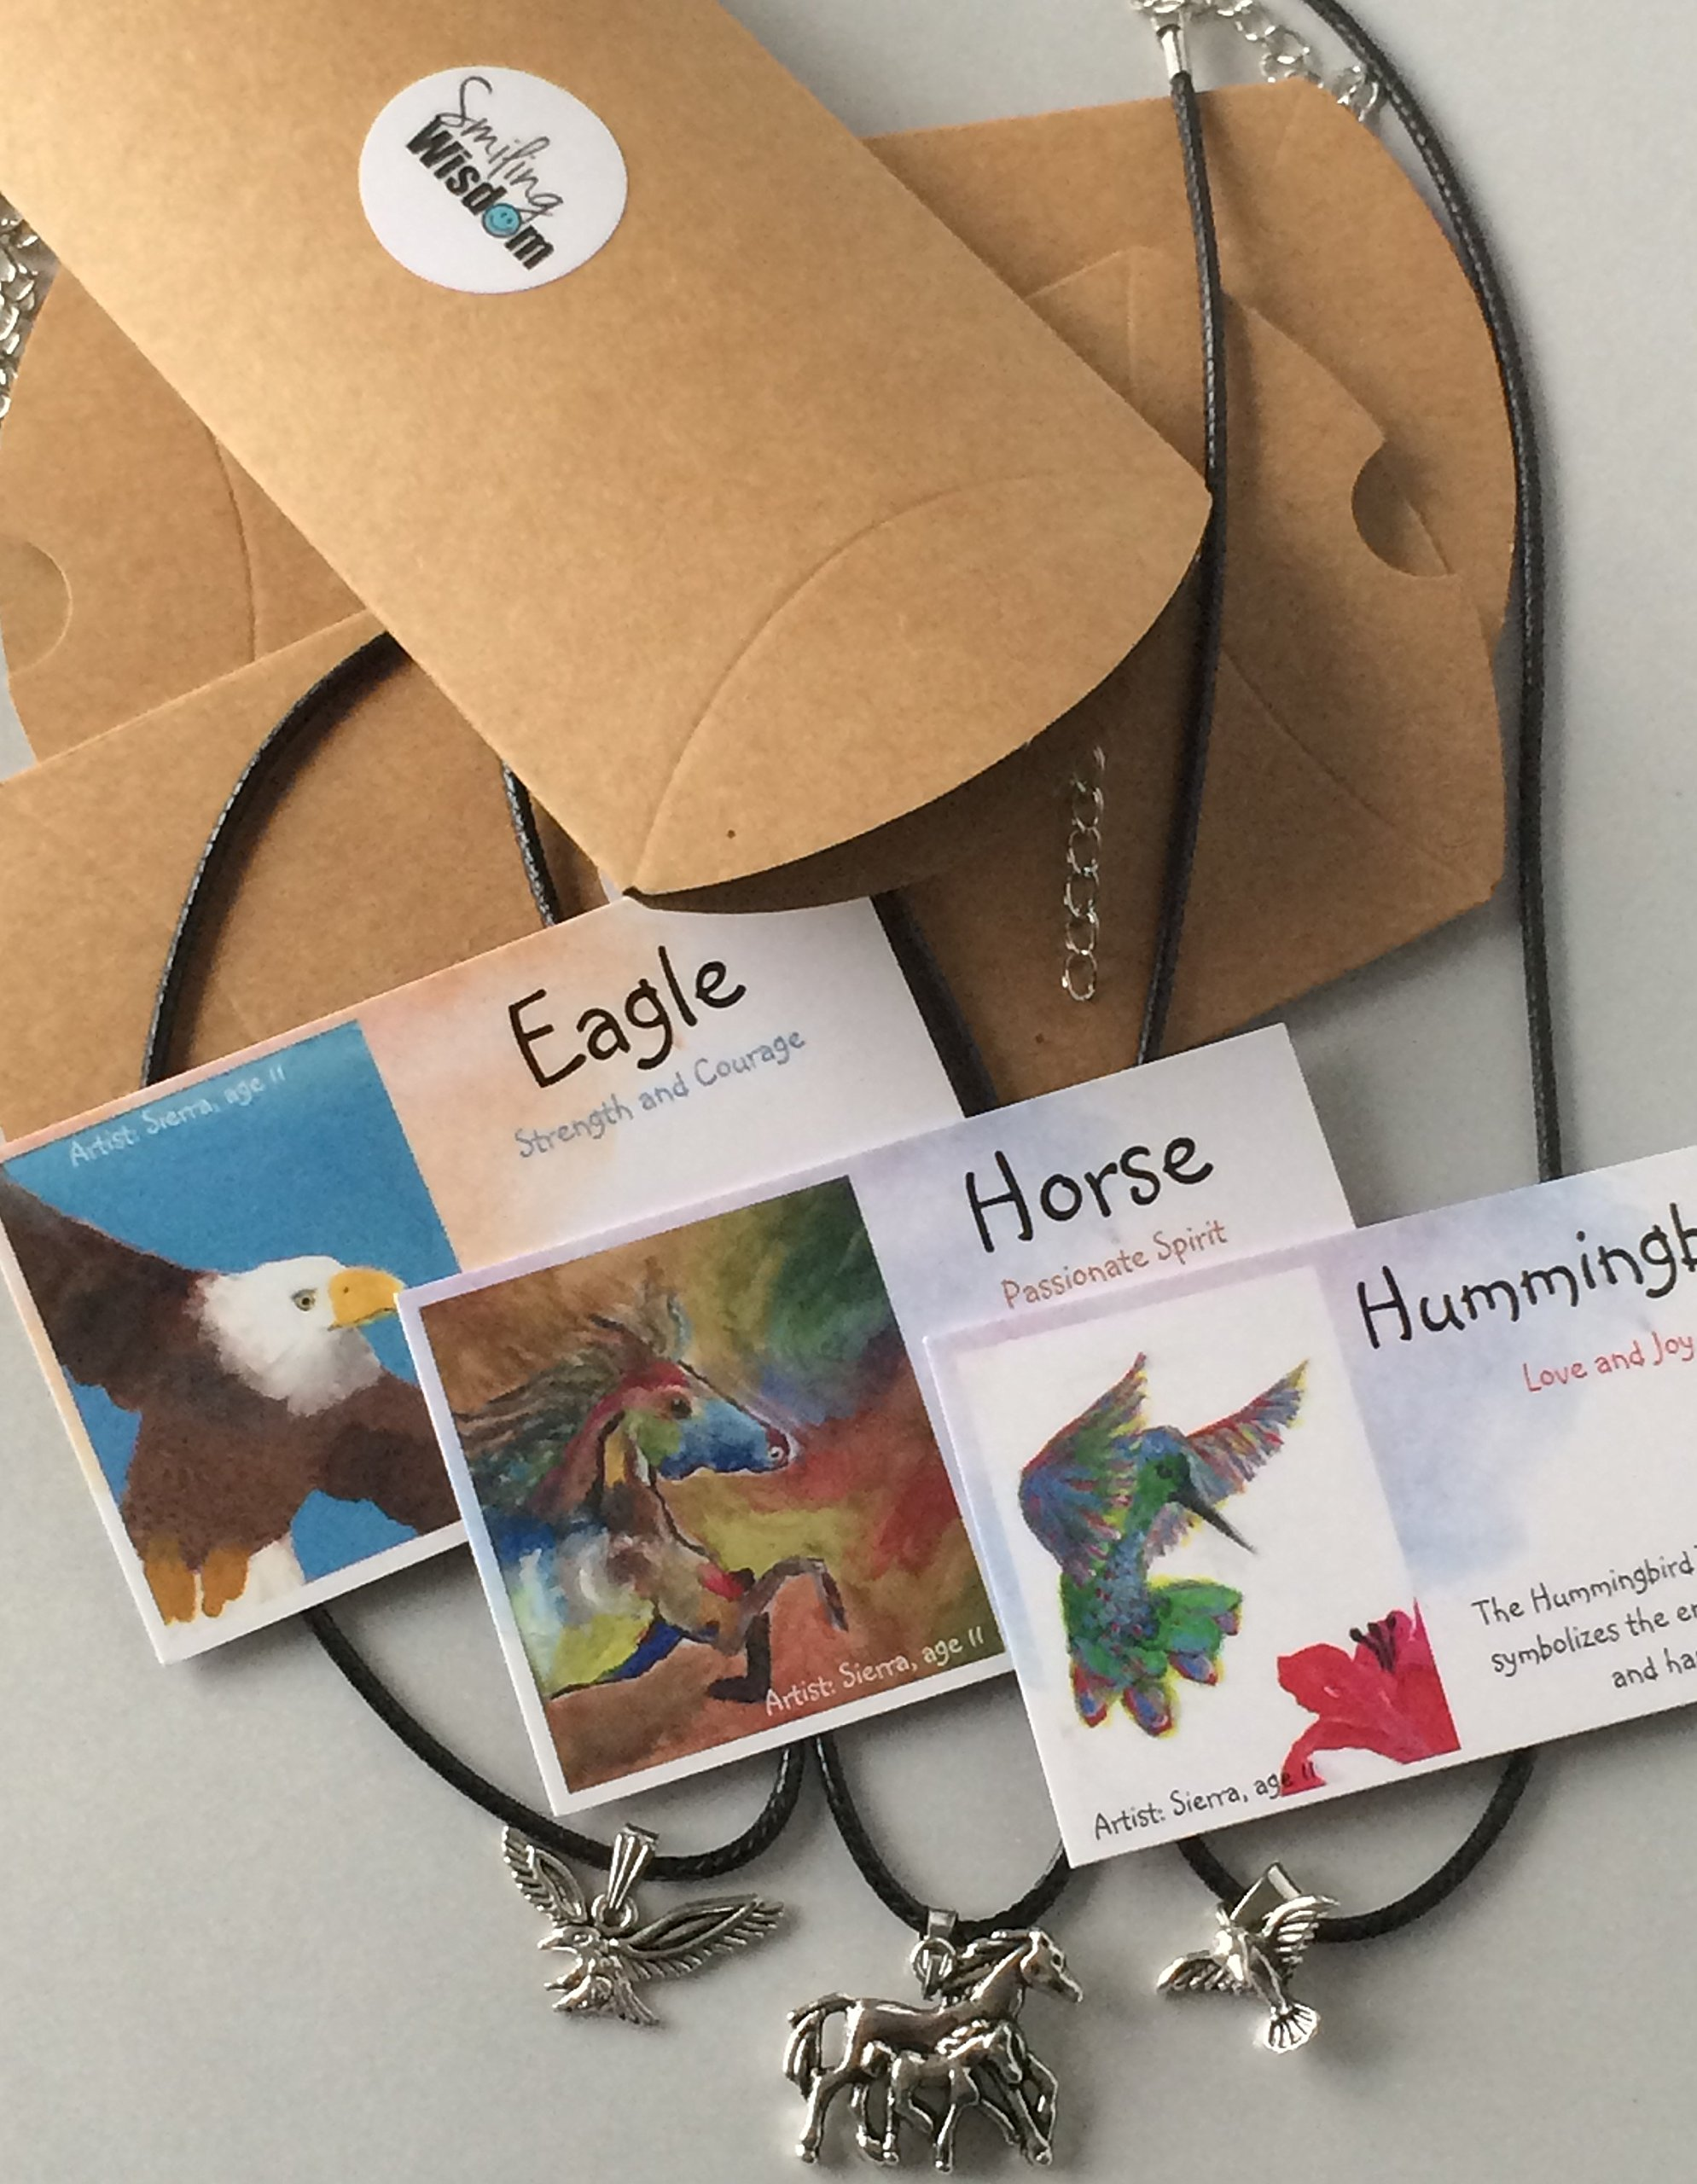 Smiling Wisdom - Horse, Hummingbird, Eagle Friendship Totem Animal Gift Set - Spirit Animals - Kids Party Favor Gifts - 3 Spirit Animal Necklace Value Pack - Gifts for Children, Boys, Girls